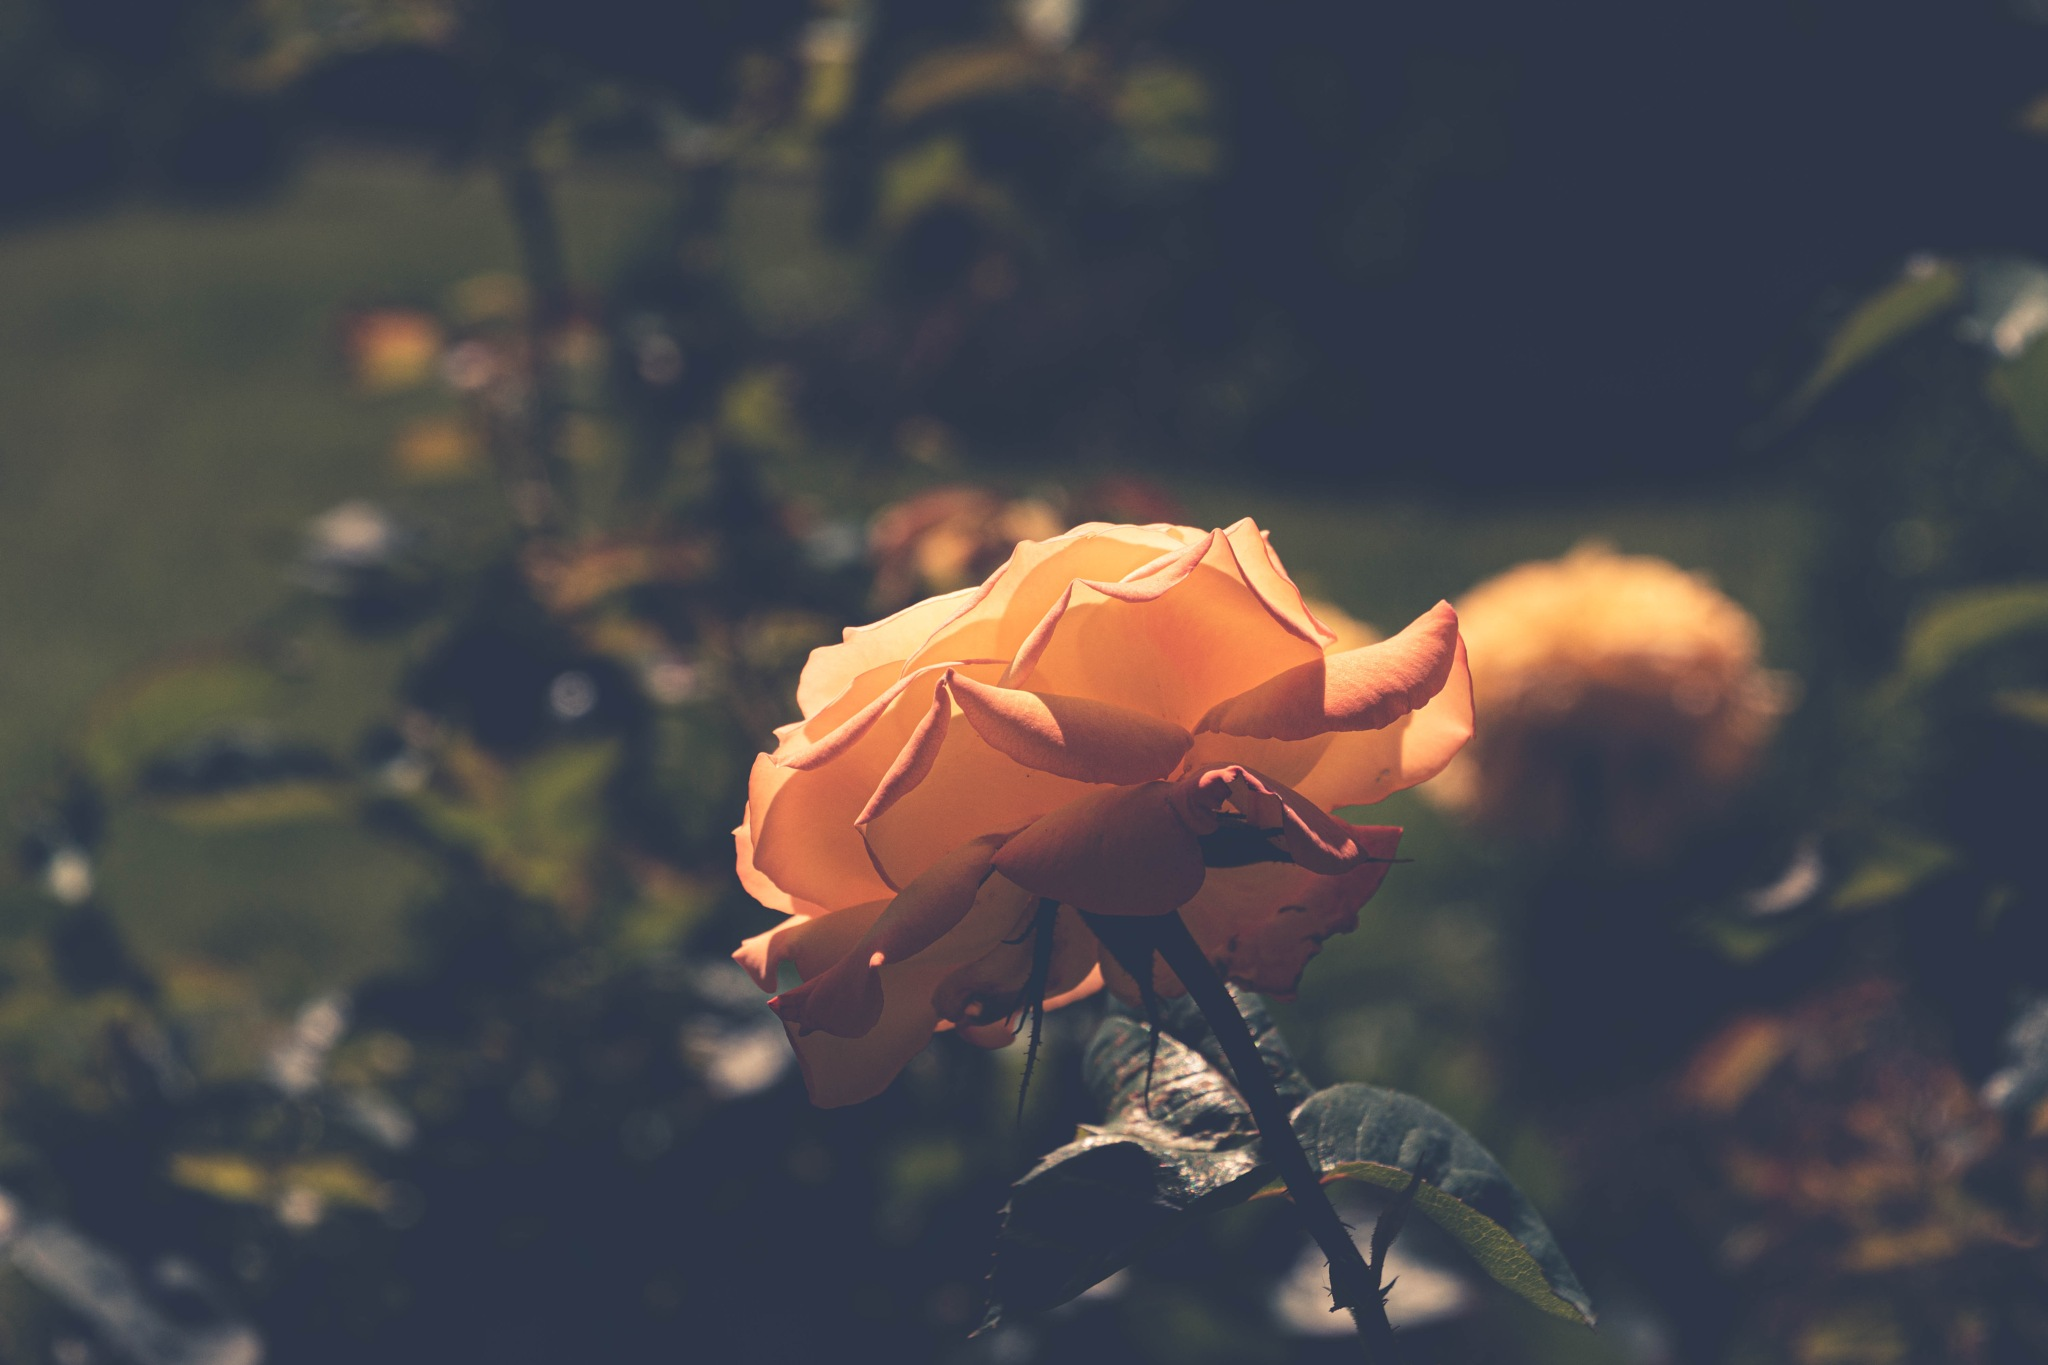 Yellow rose by Johnny Lythell